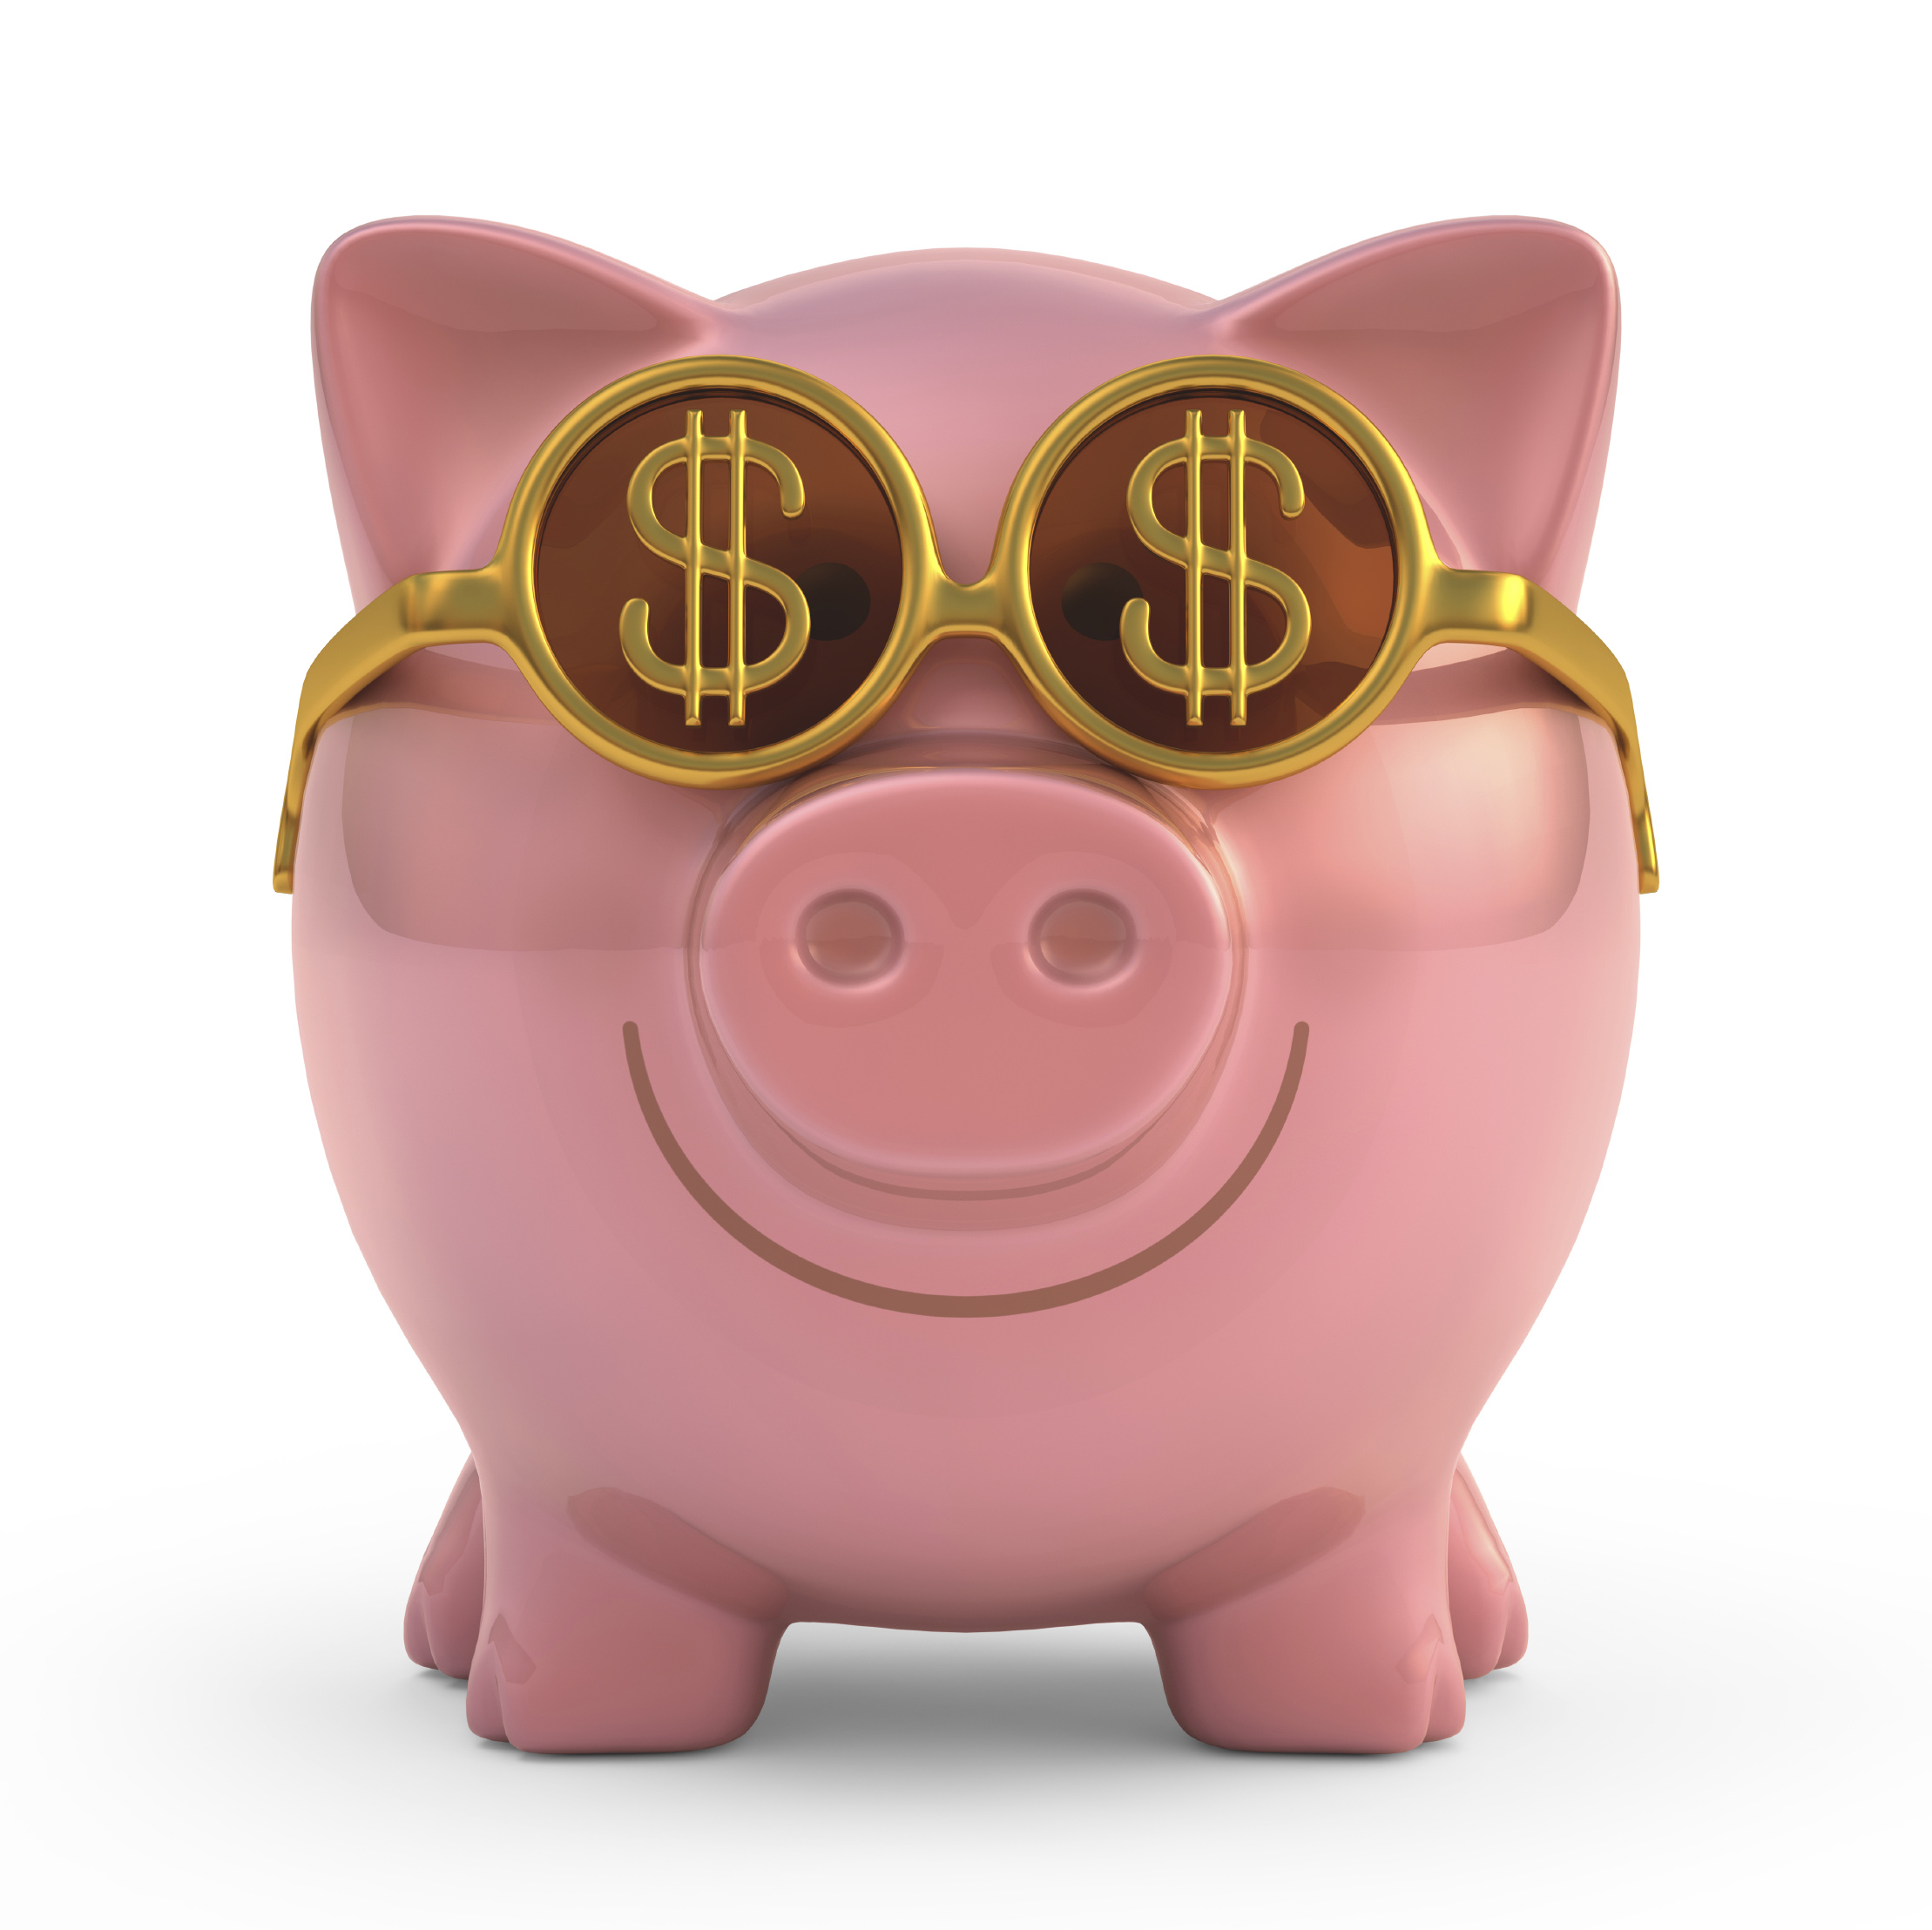 Piggy bank wearing sunglasses with money sign. Clipping path included.